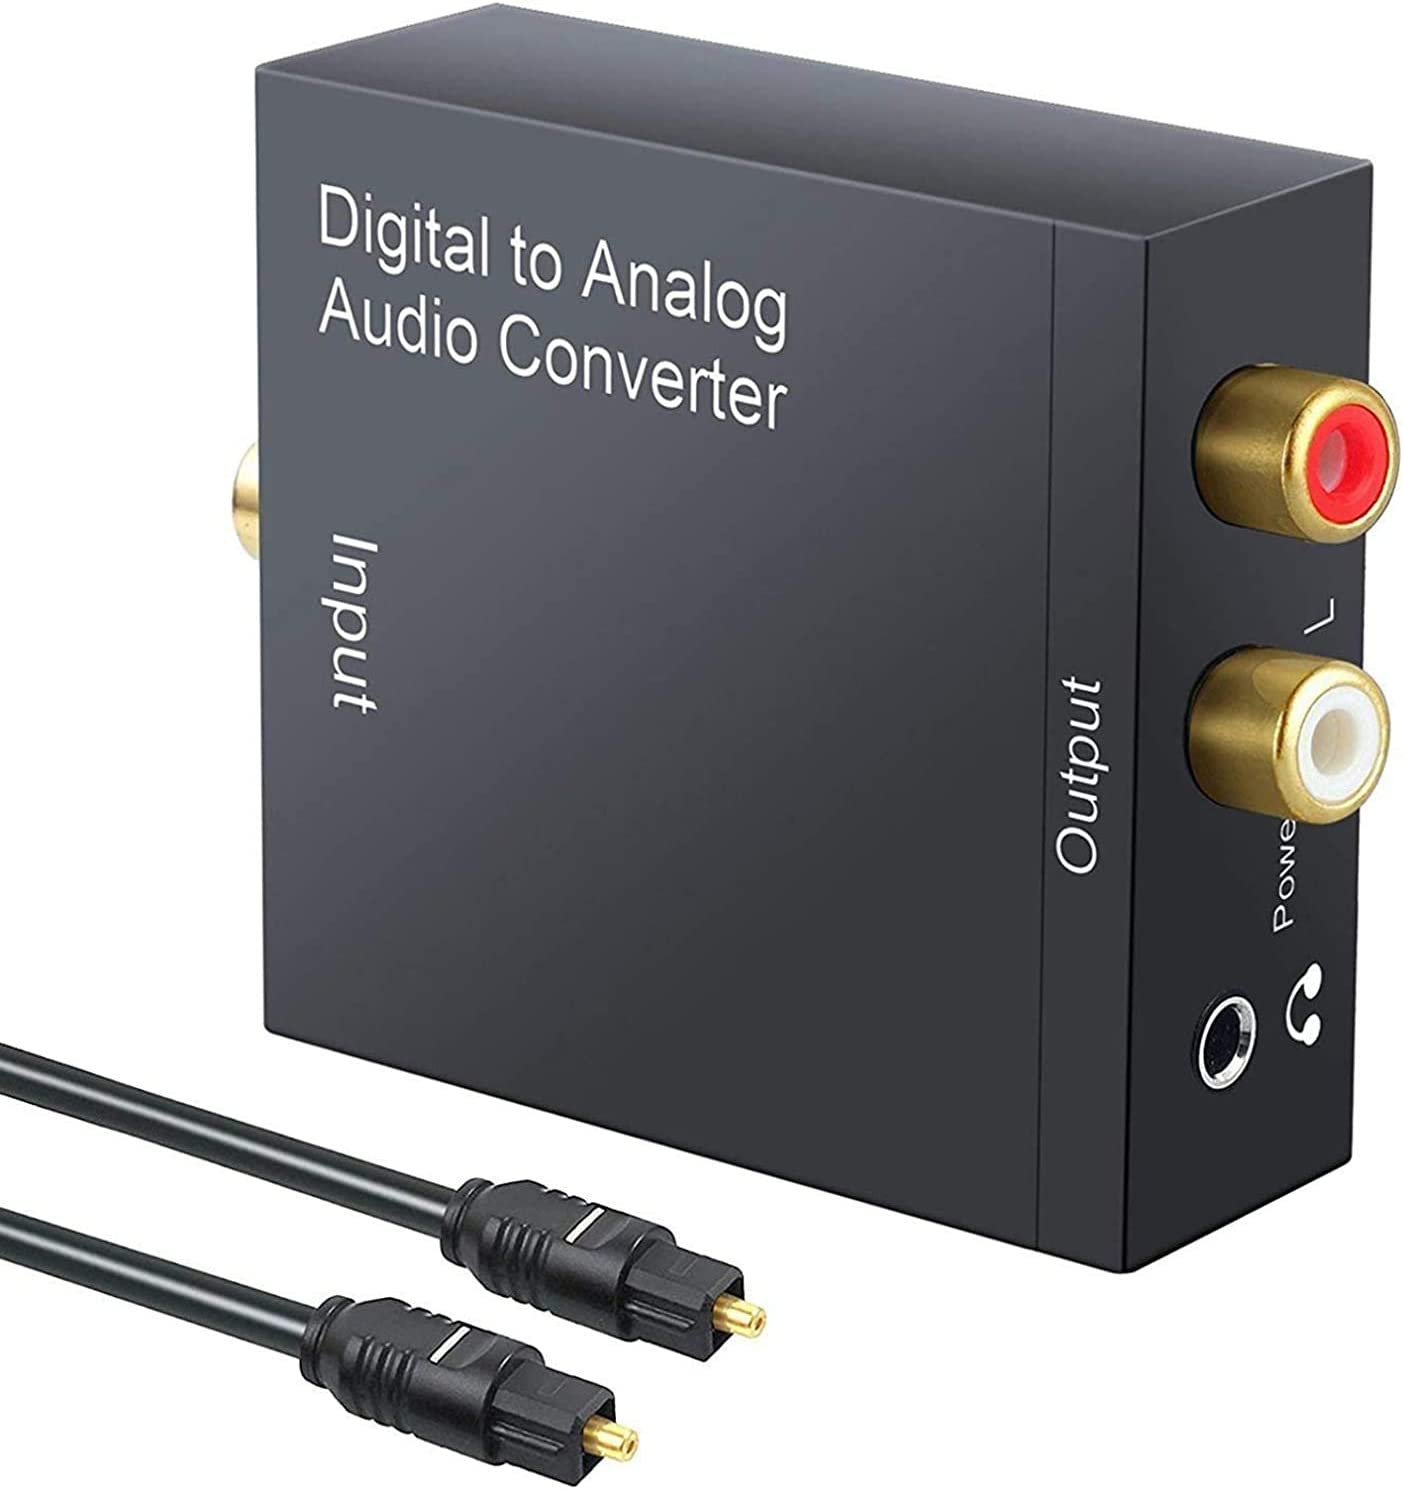 T Tersely DAC Digital to Analog Converter 192KHz SPDIF Toslink to Analog Stereo RCA 3.5mm Audio L/R Converter Adapter with Optical Cable for PS3 Xbox HD DVD PS4 Home Cinema Systems AV Amps Apple TV